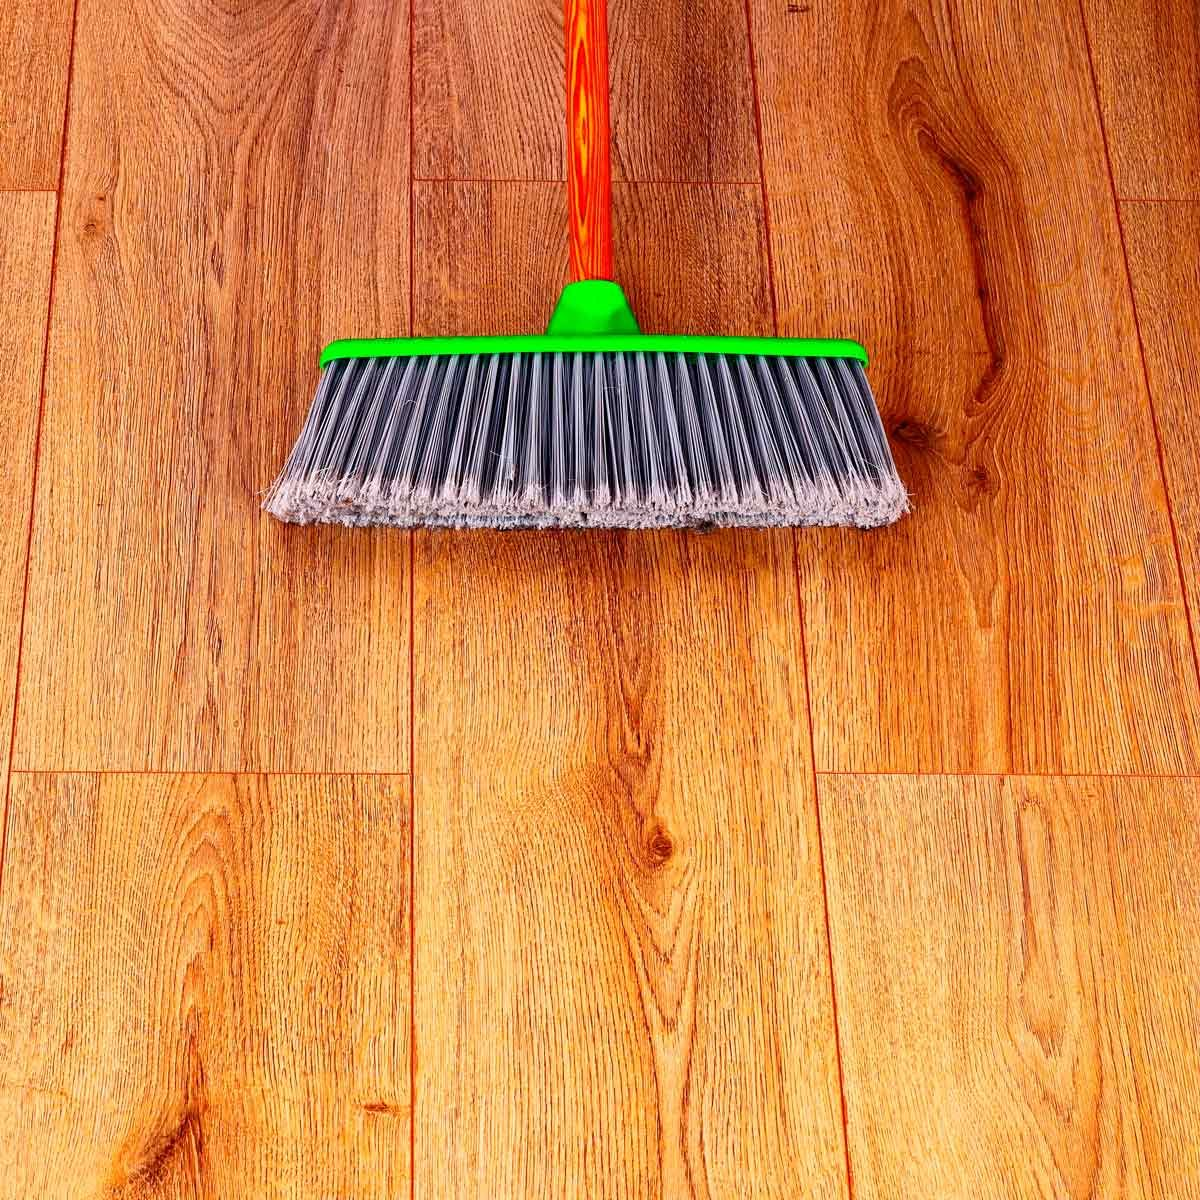 How To Clean Wood Floors Family Handyman